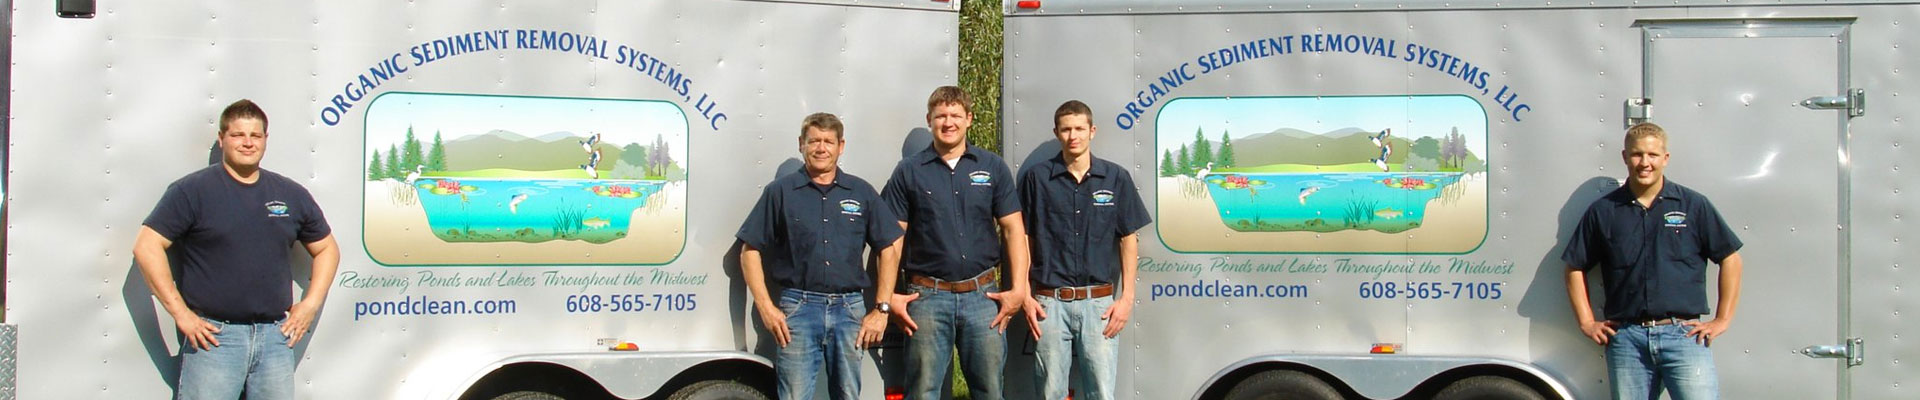 Pond Cleaning Services Team